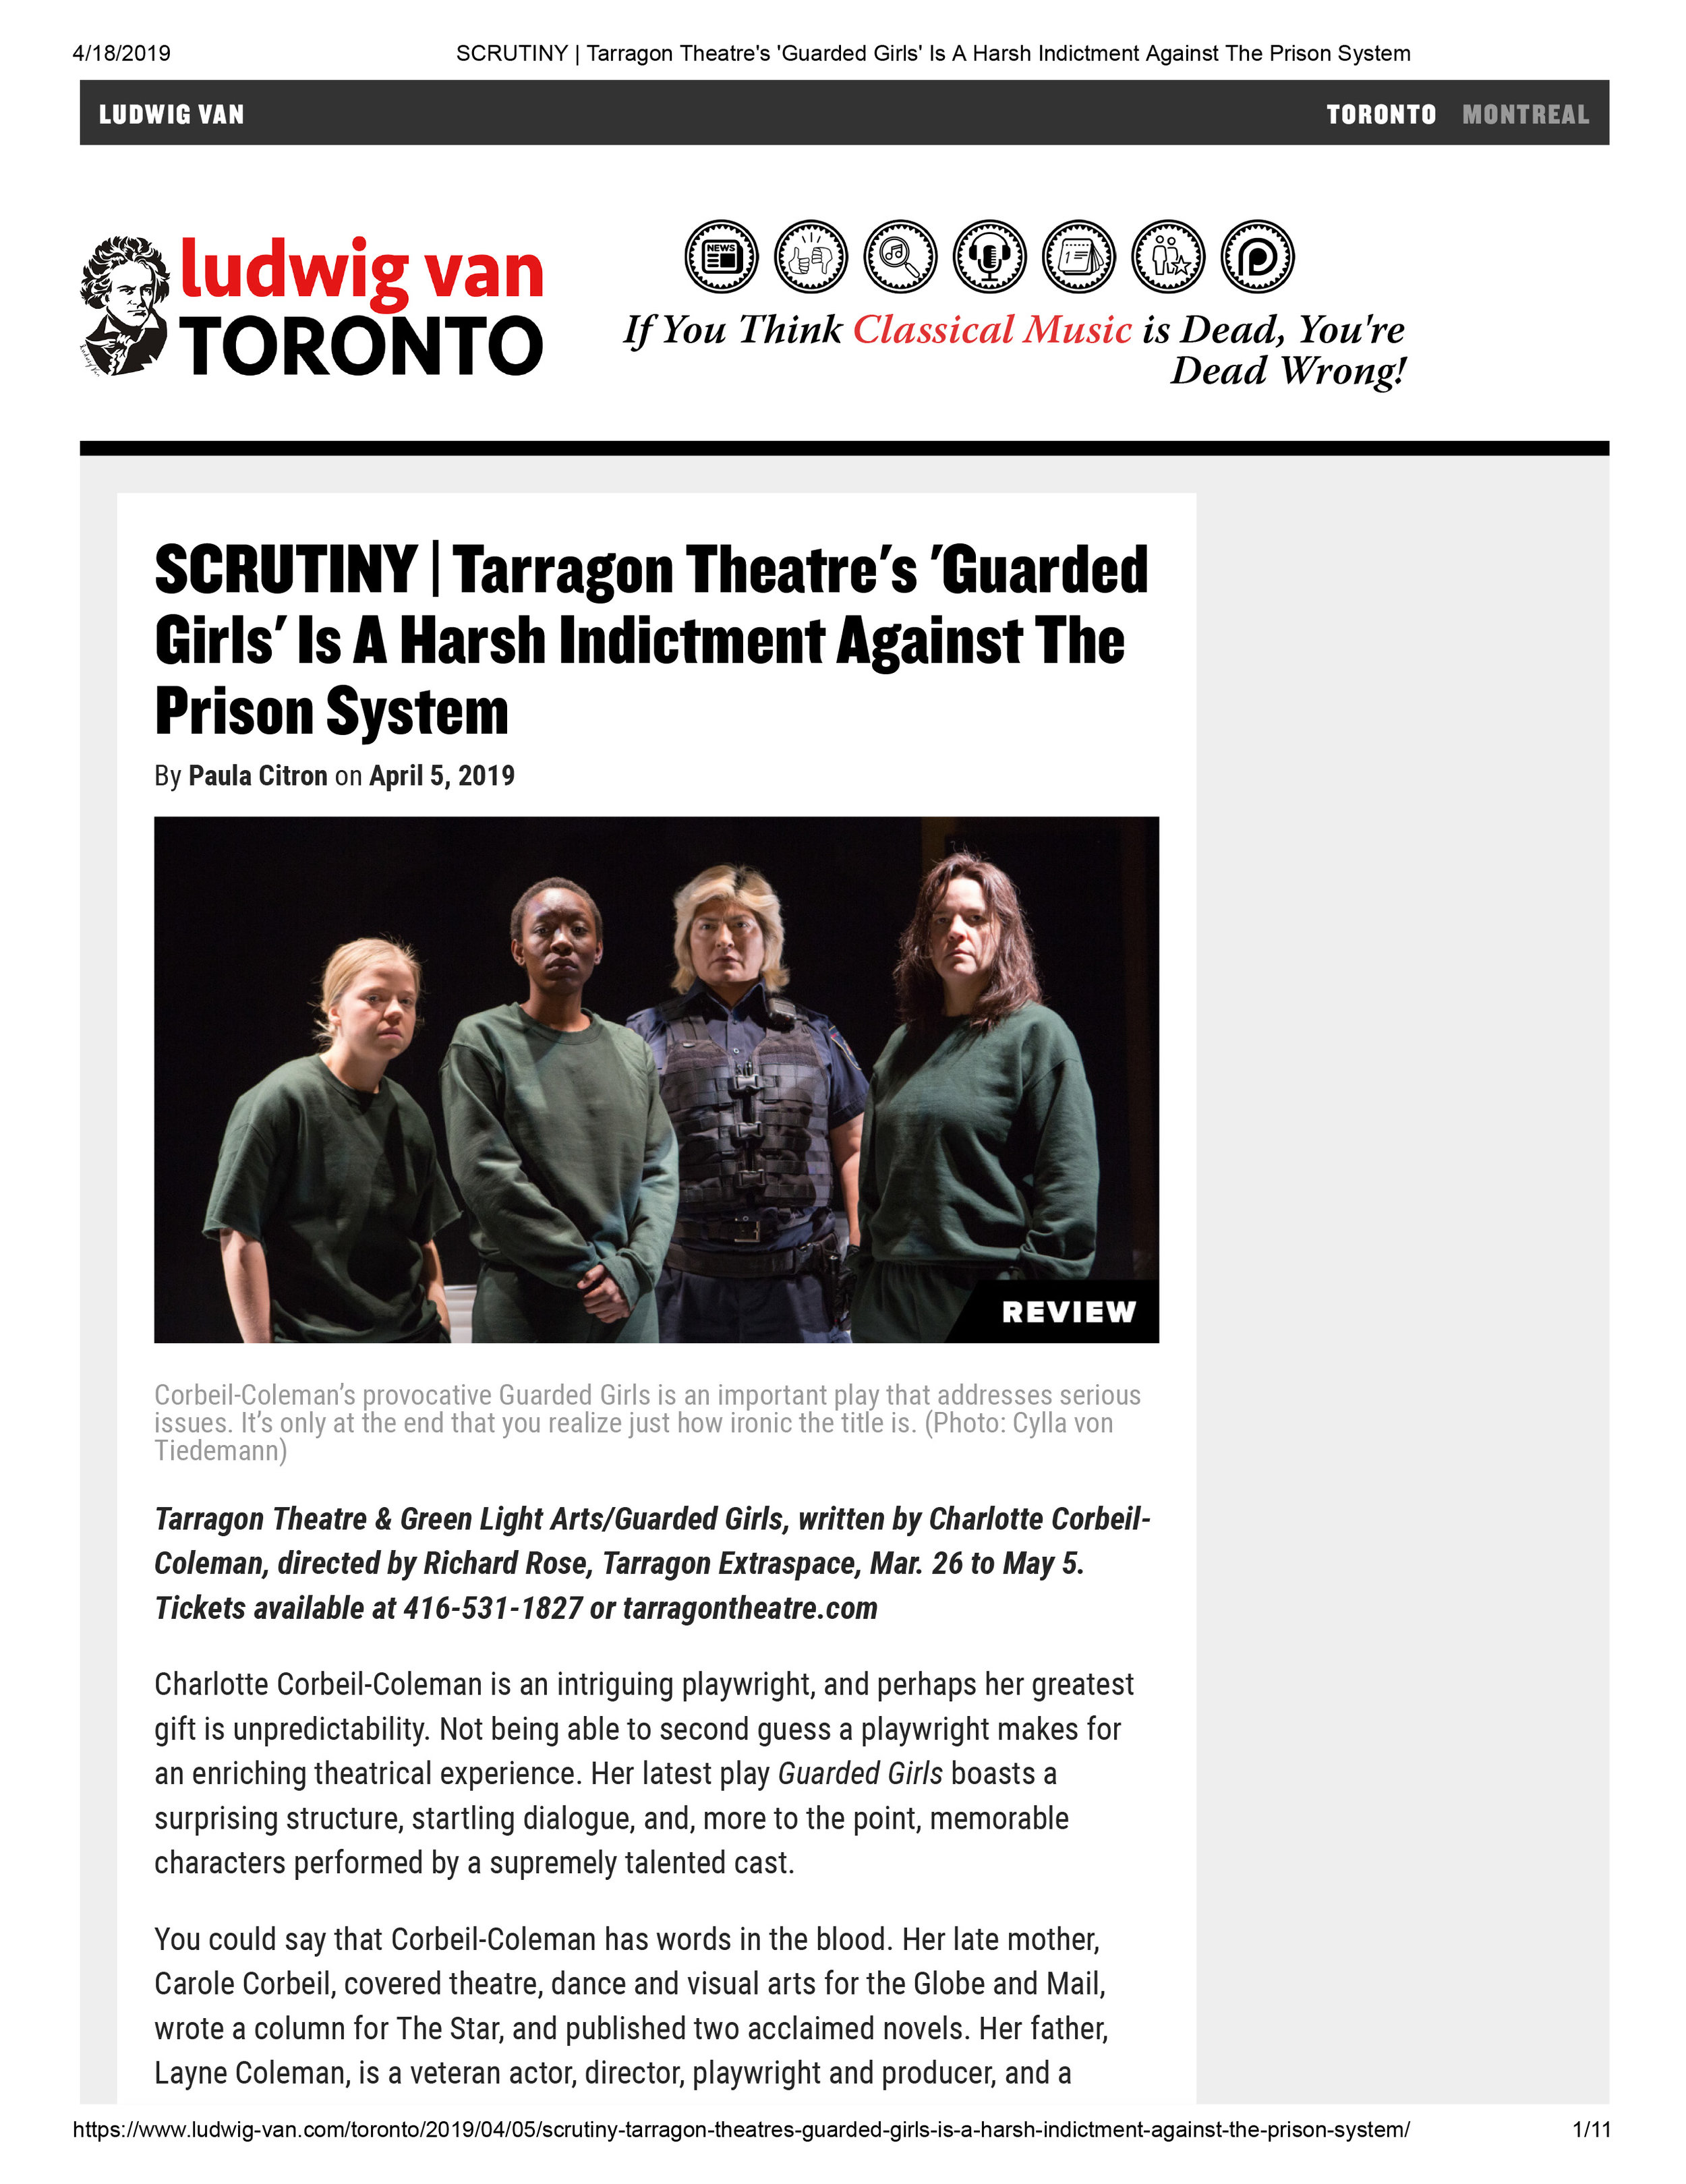 SCRUTINY _ Tarragon Theatre's 'Guarded Girls' Is A Harsh Indictment Against The Prison System.jpg